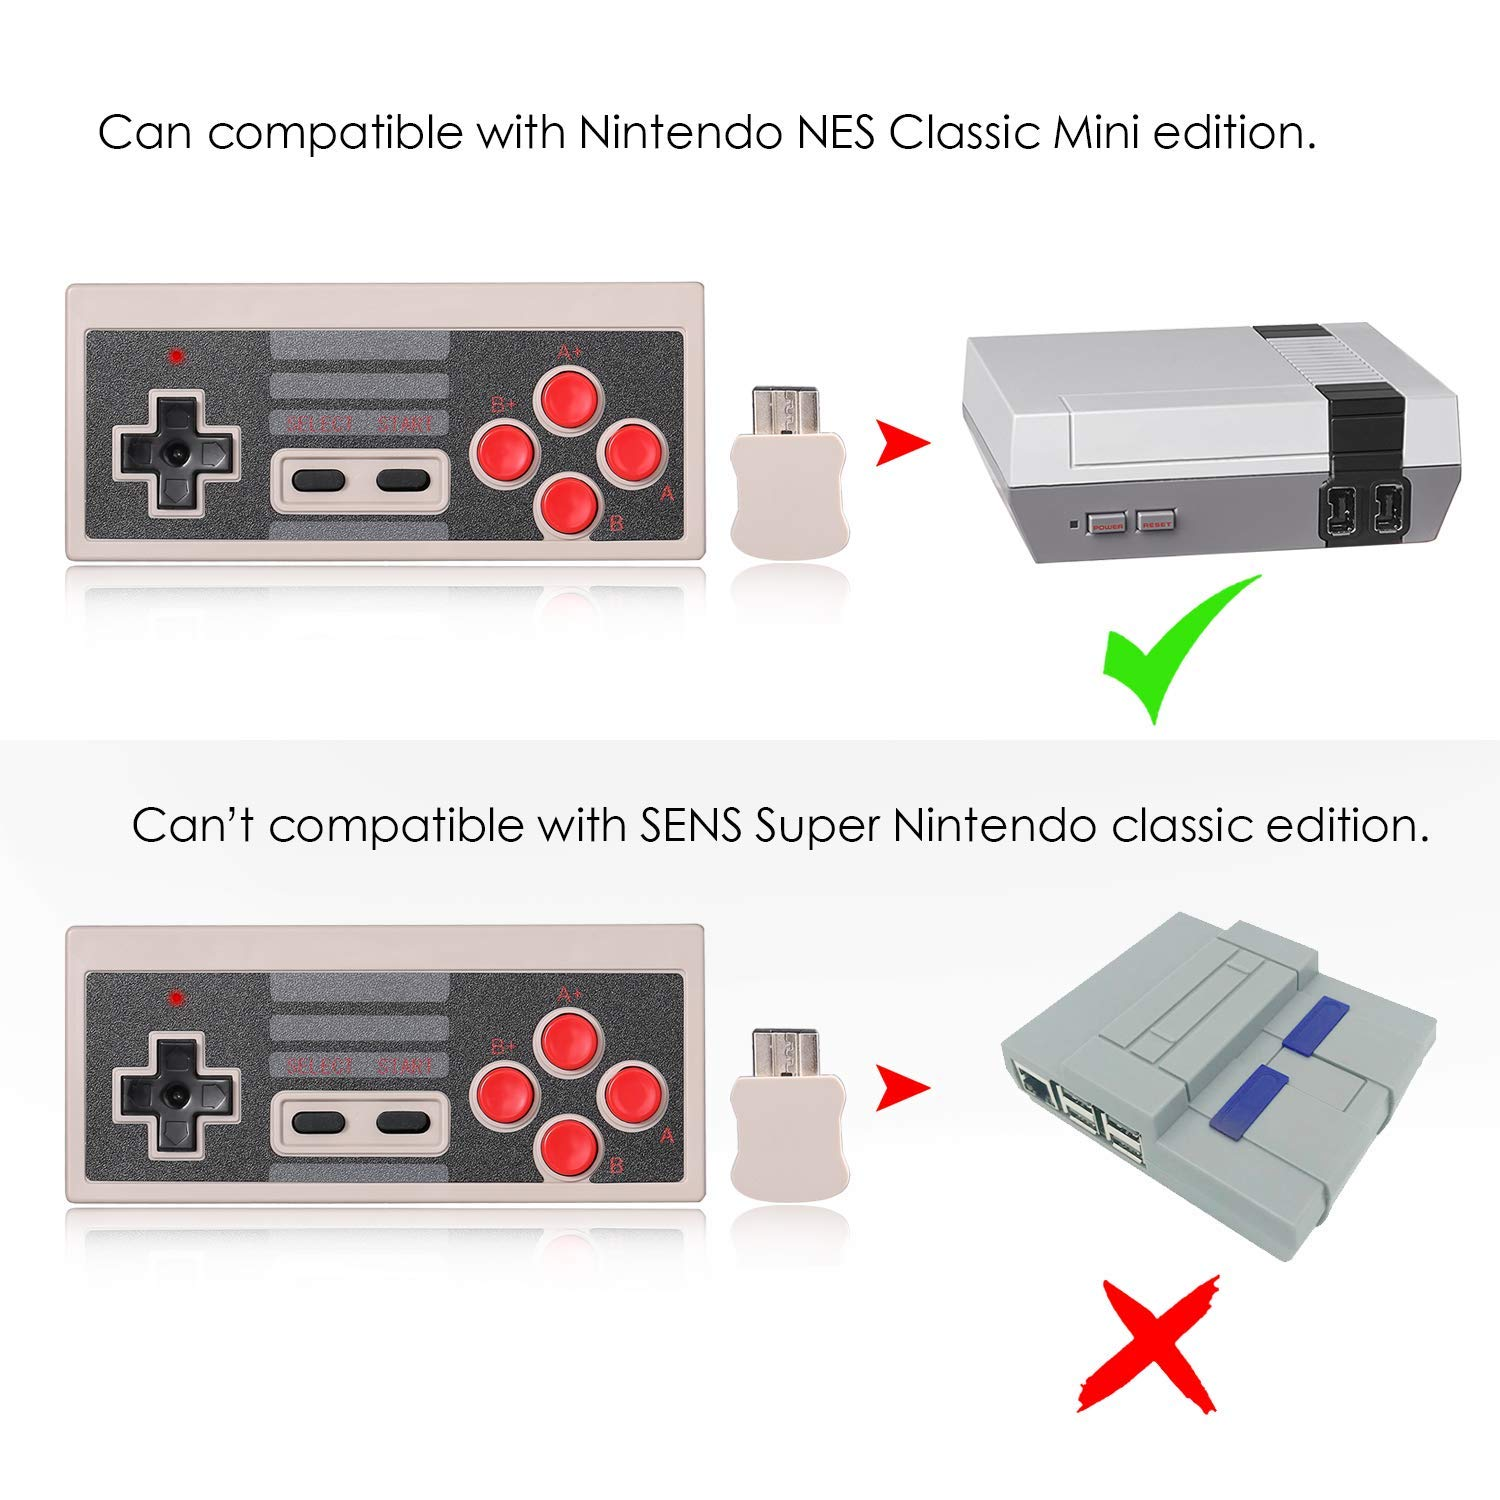 2 Pack NES Classic Wireless Controller, Nintendo Classic Controller Gamepad Joypad for Nintendo NES Classic Edition (NOT for SNES Super Nintendo Classic Edition) by Lxuemlu (Image #4)